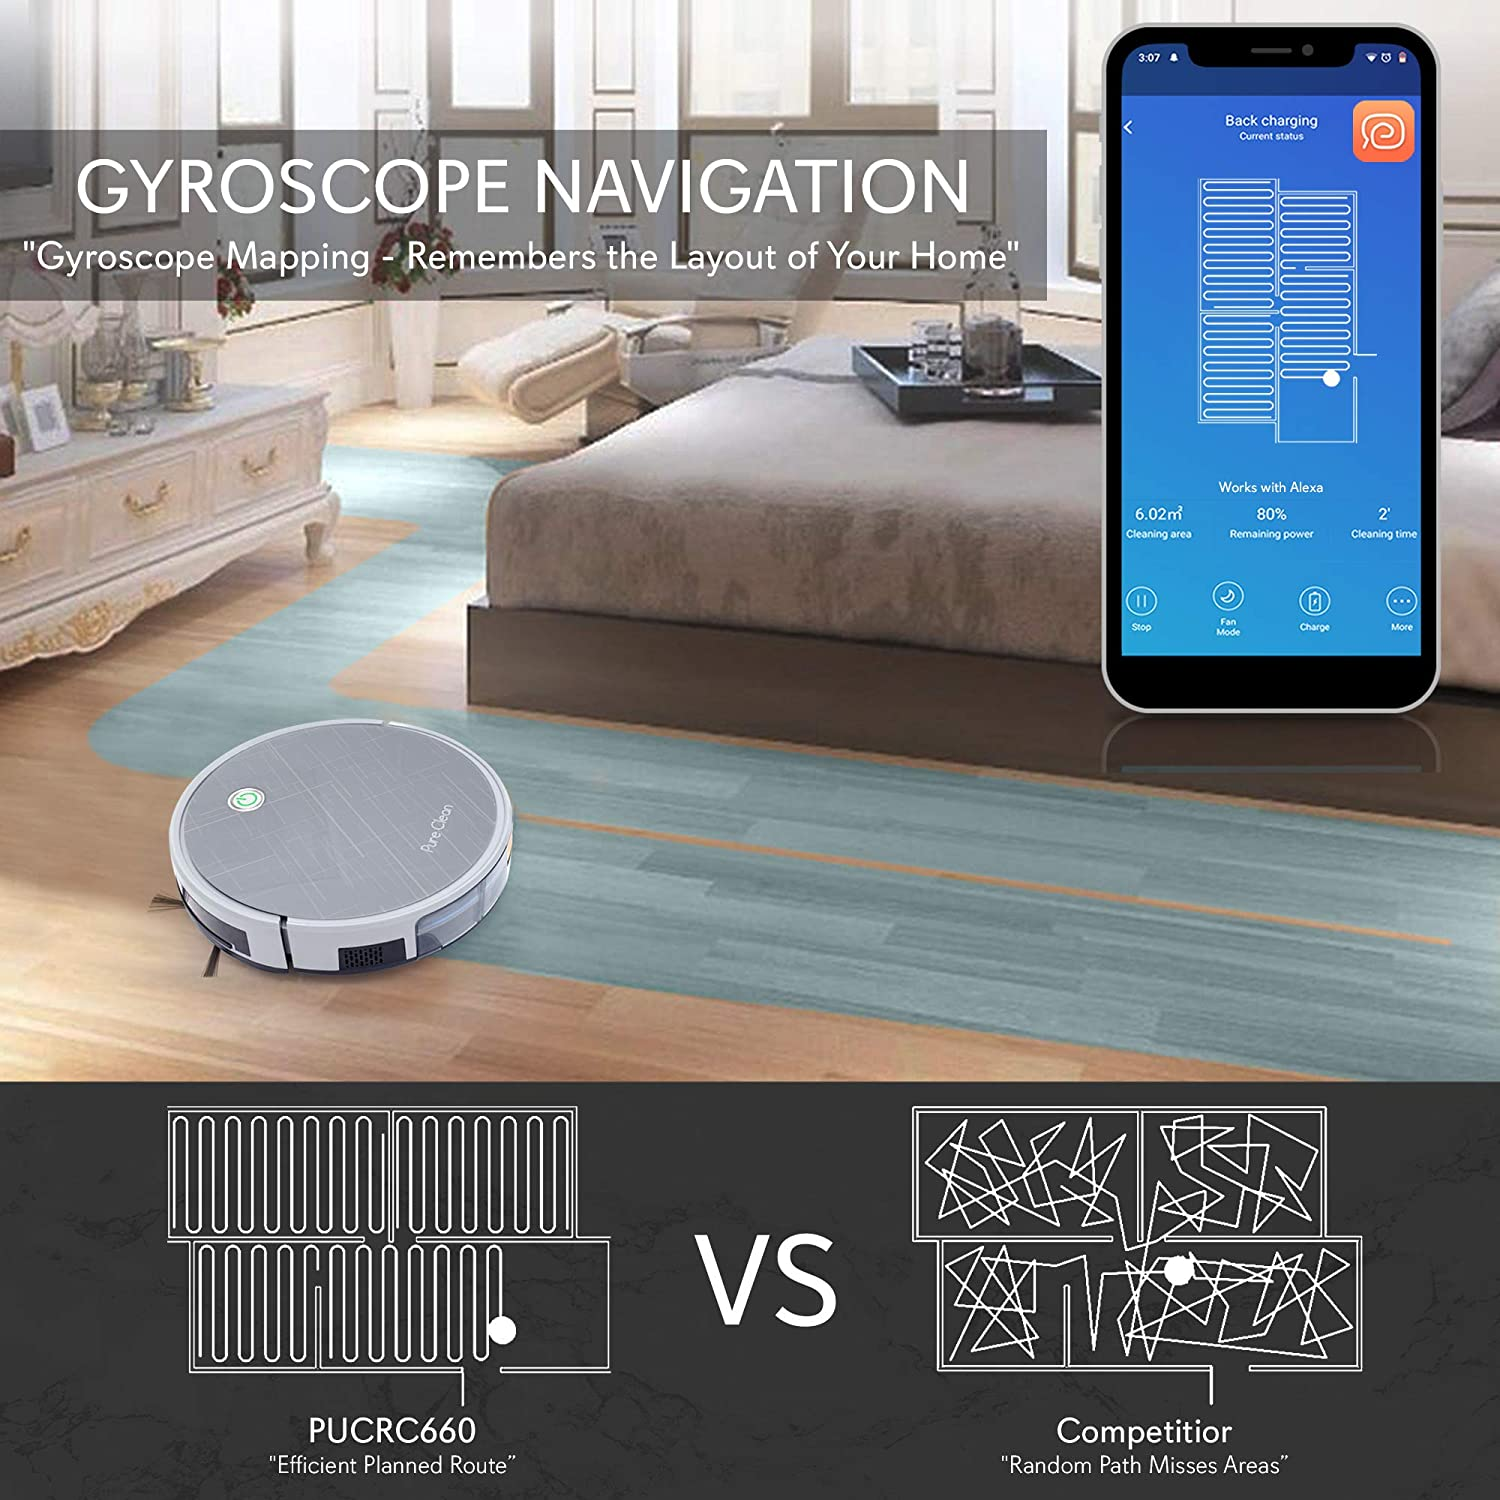 PUCRC660 PureClean Smart Robot Vacuum Auto Charge Dock 3 Step HEPA Filter Cleaner Gyroscope Multiroom Navigation Mobile App Control and Alexa Compatible Cleans Hardwood and Carpet Floor